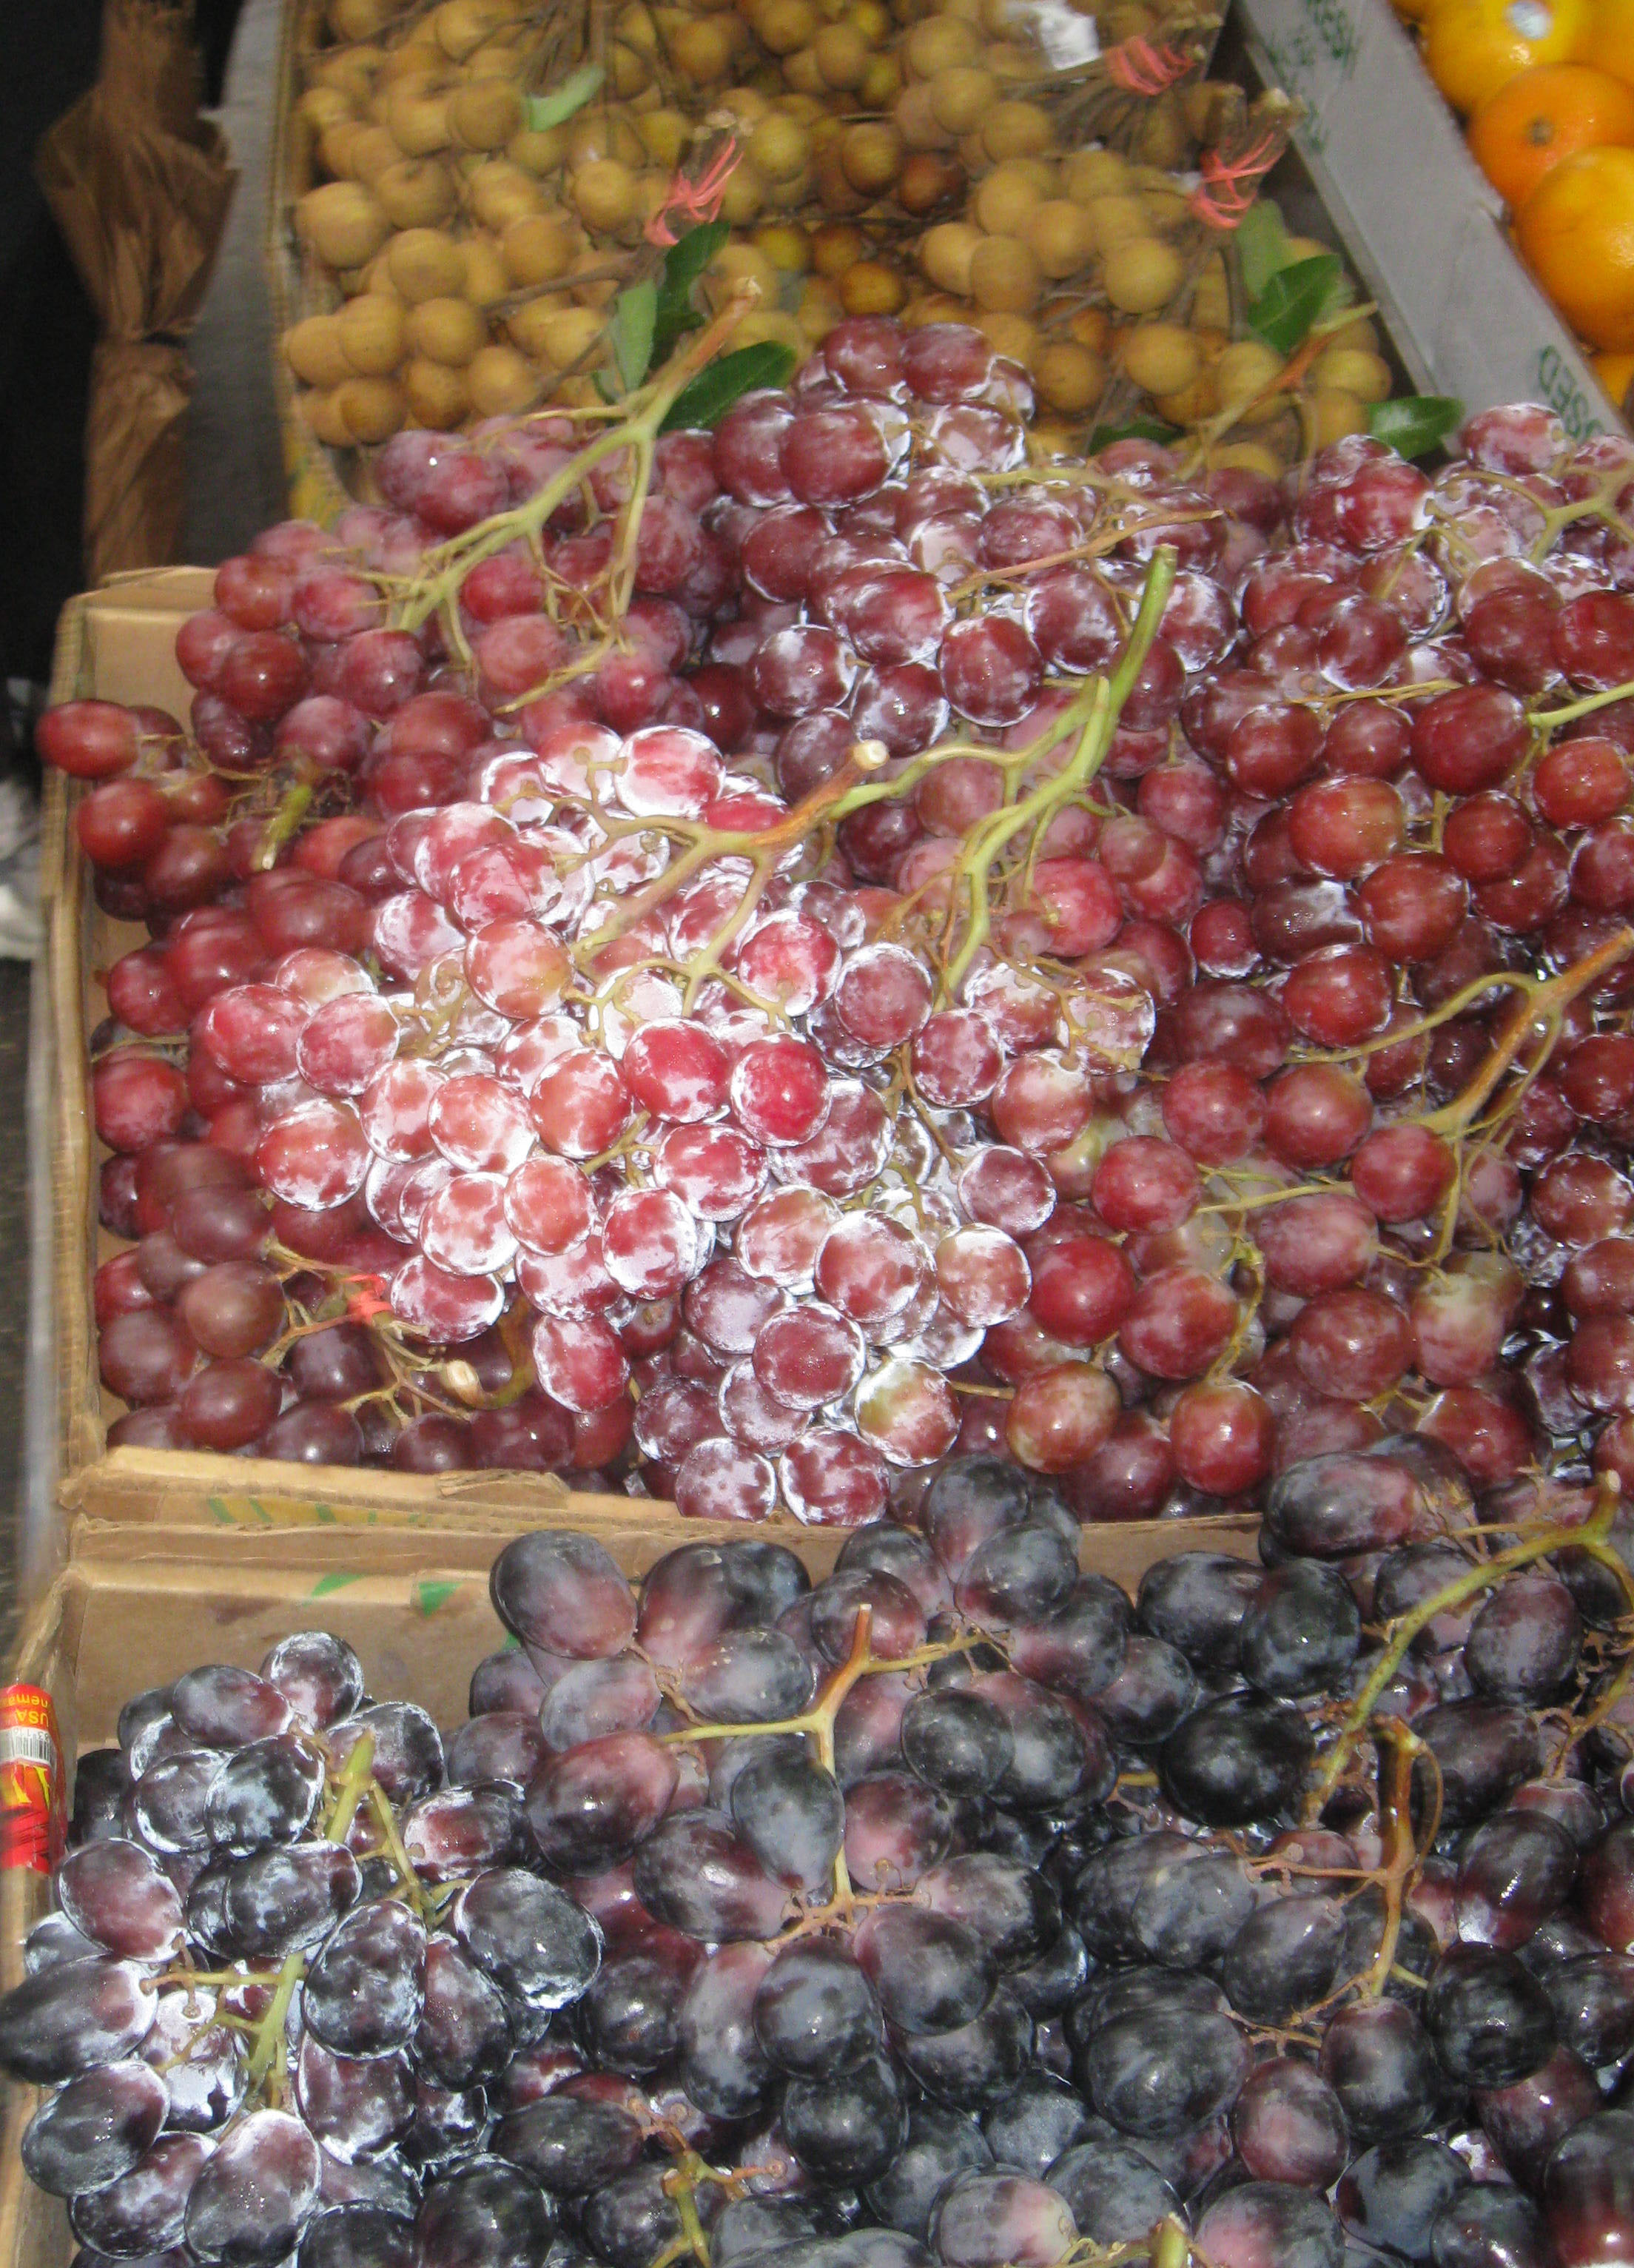 grapes and lychees